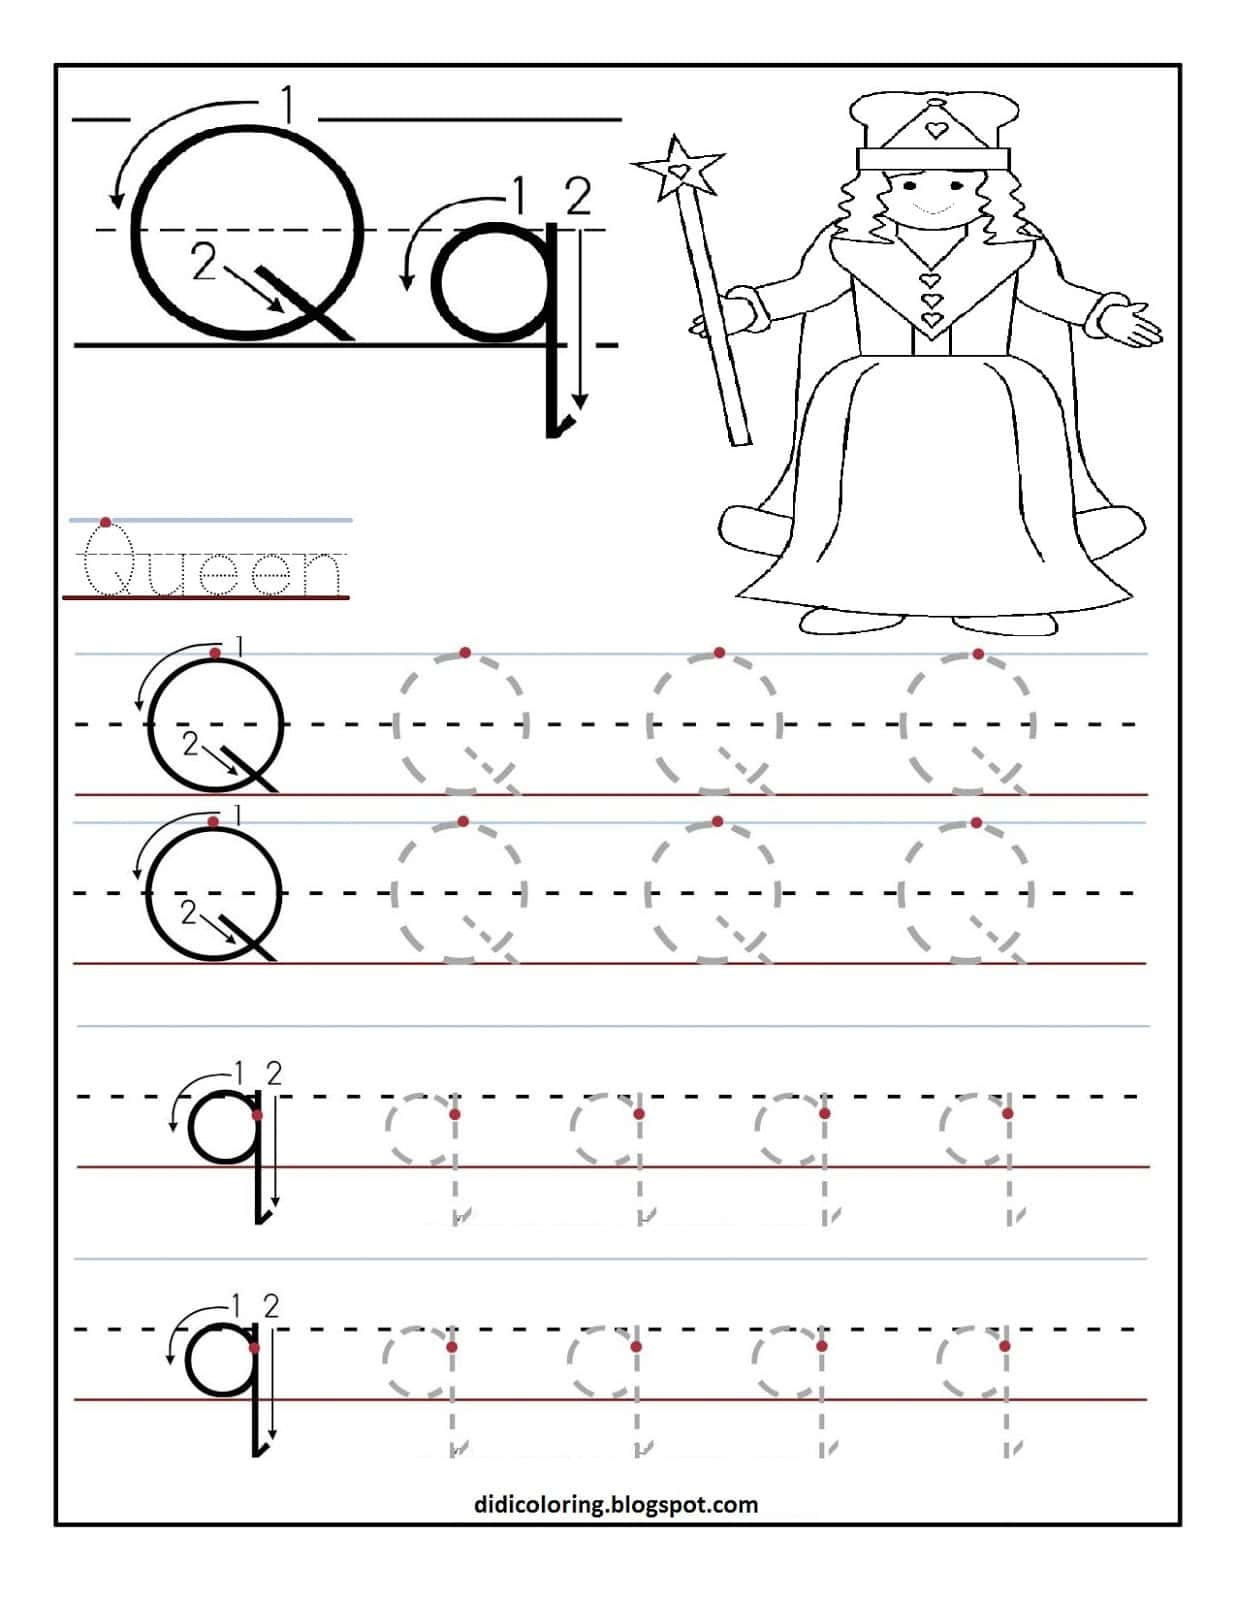 Preschool Worksheets Age 3 And Free Alphabet Writing Worksheets